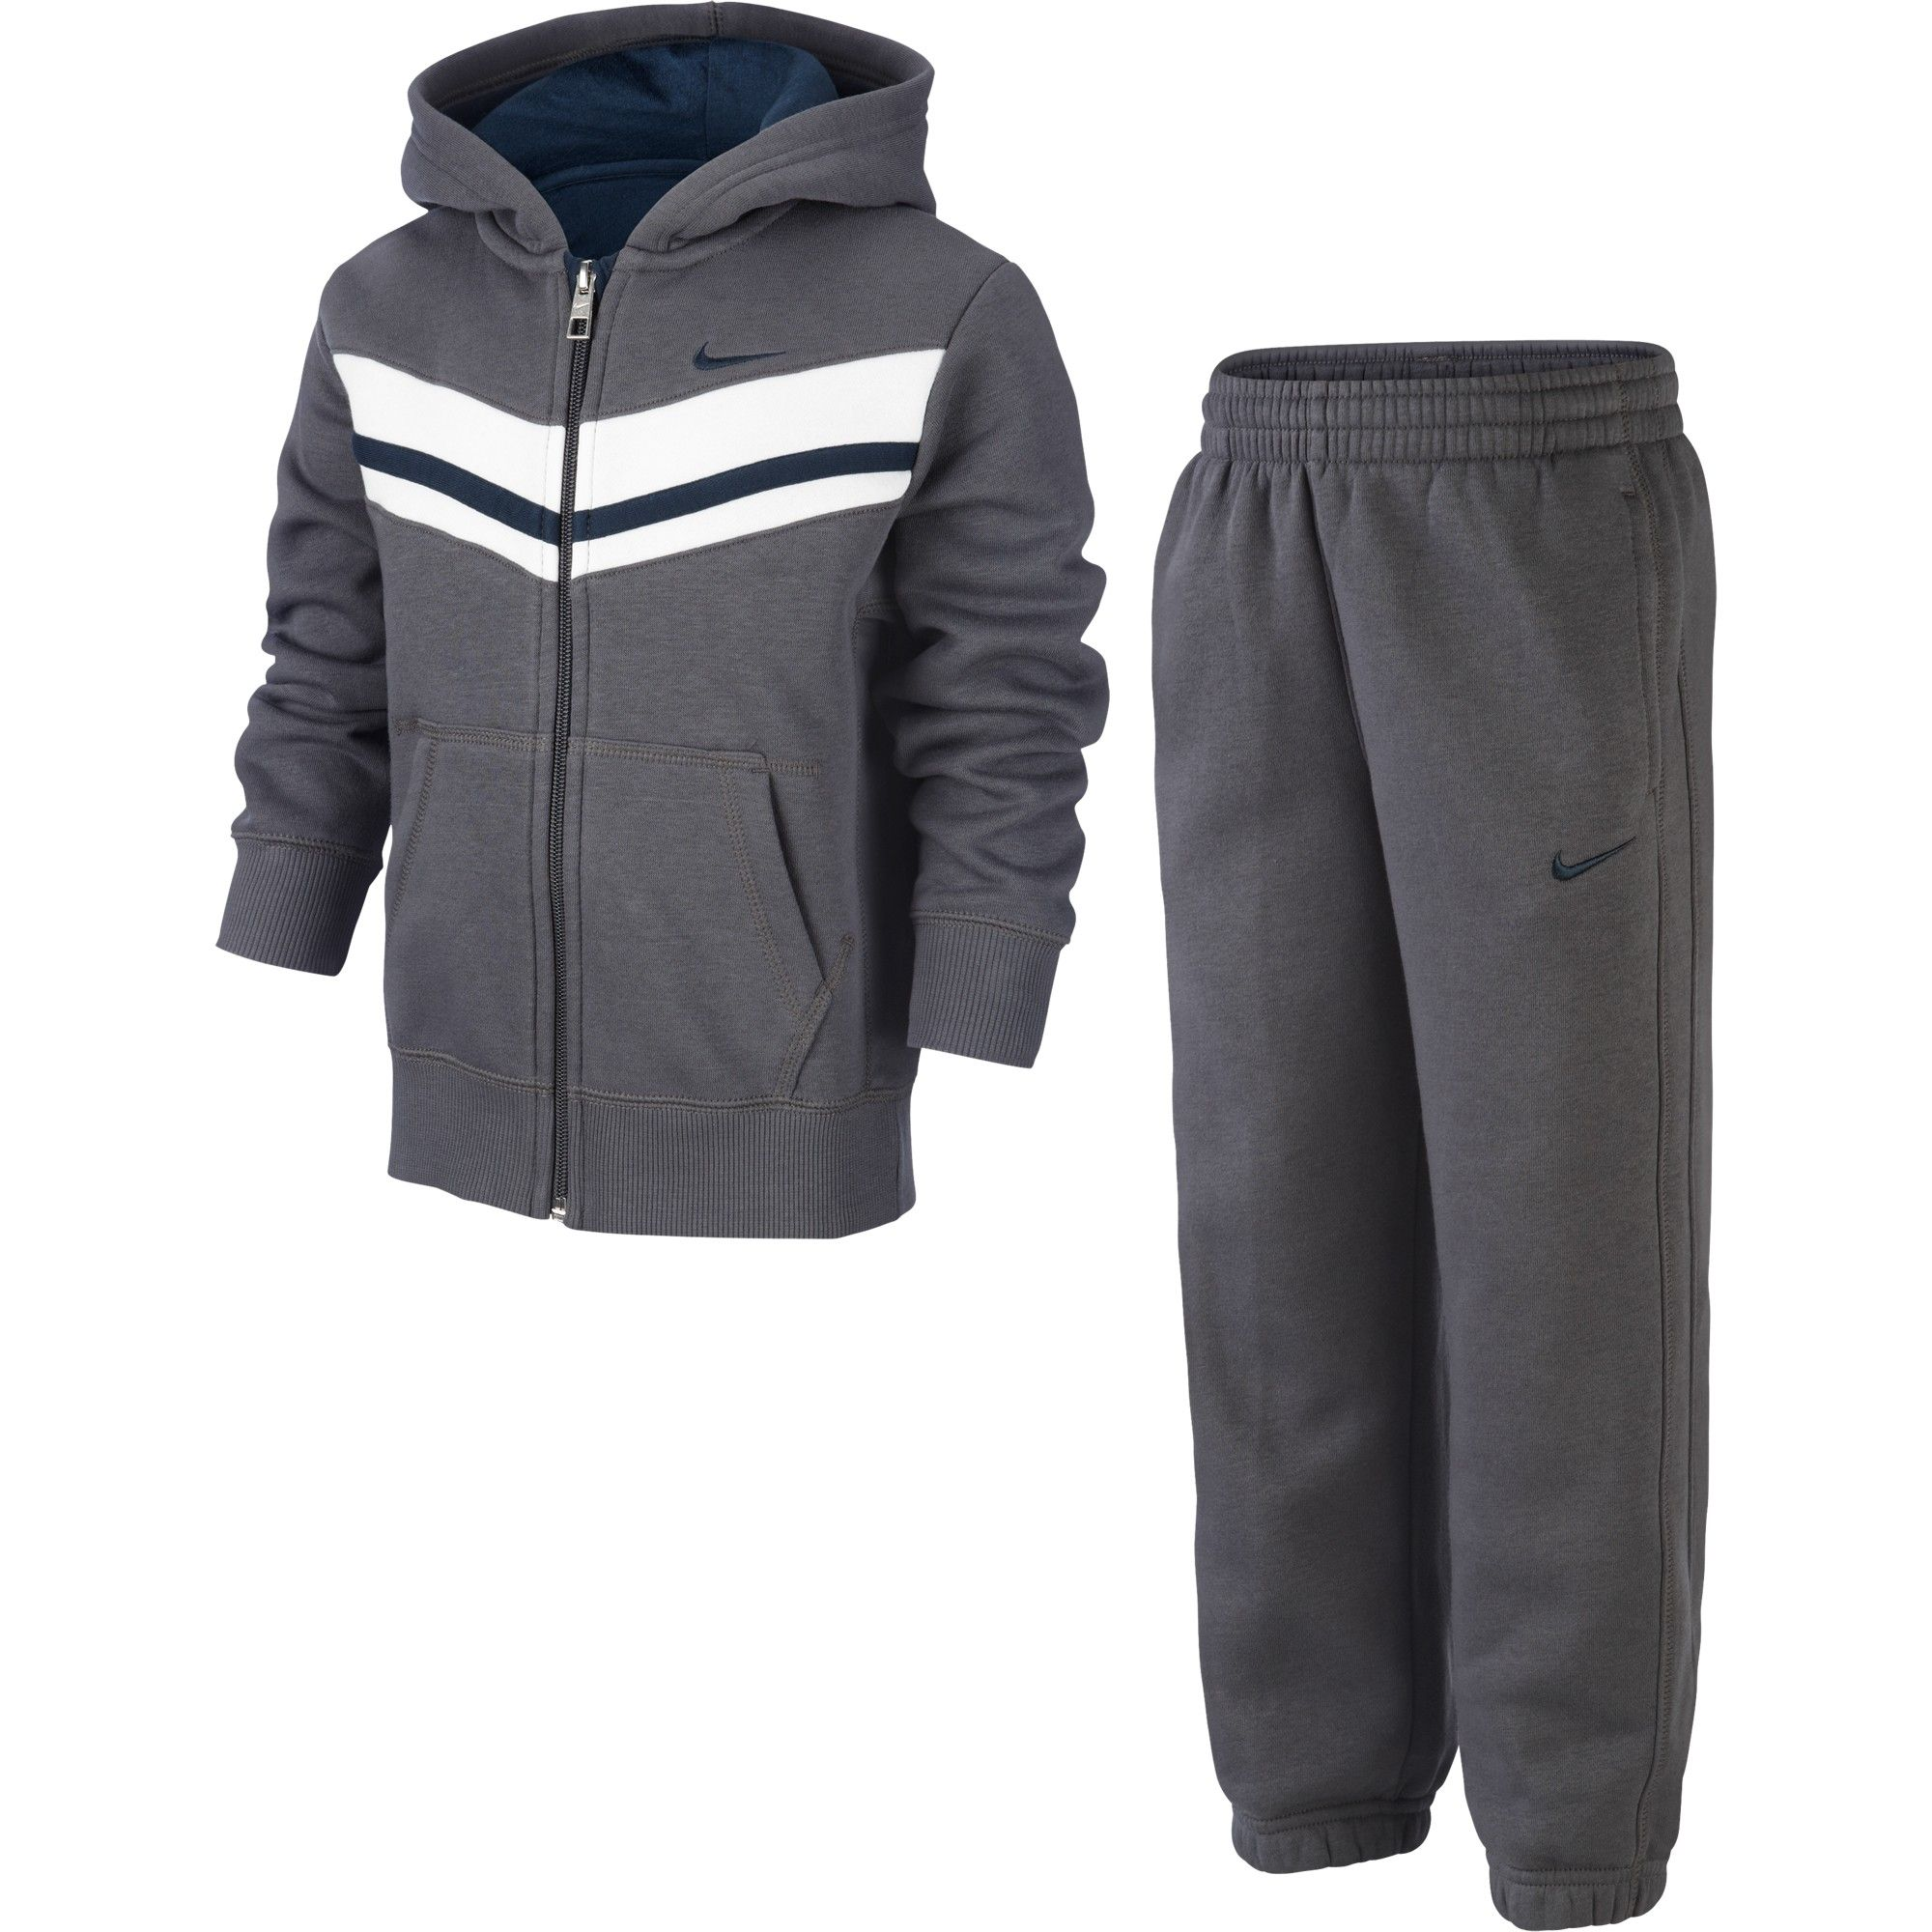 super cheap many styles promo code Branded Nike - Hooded Tracksuit in grey | Suits